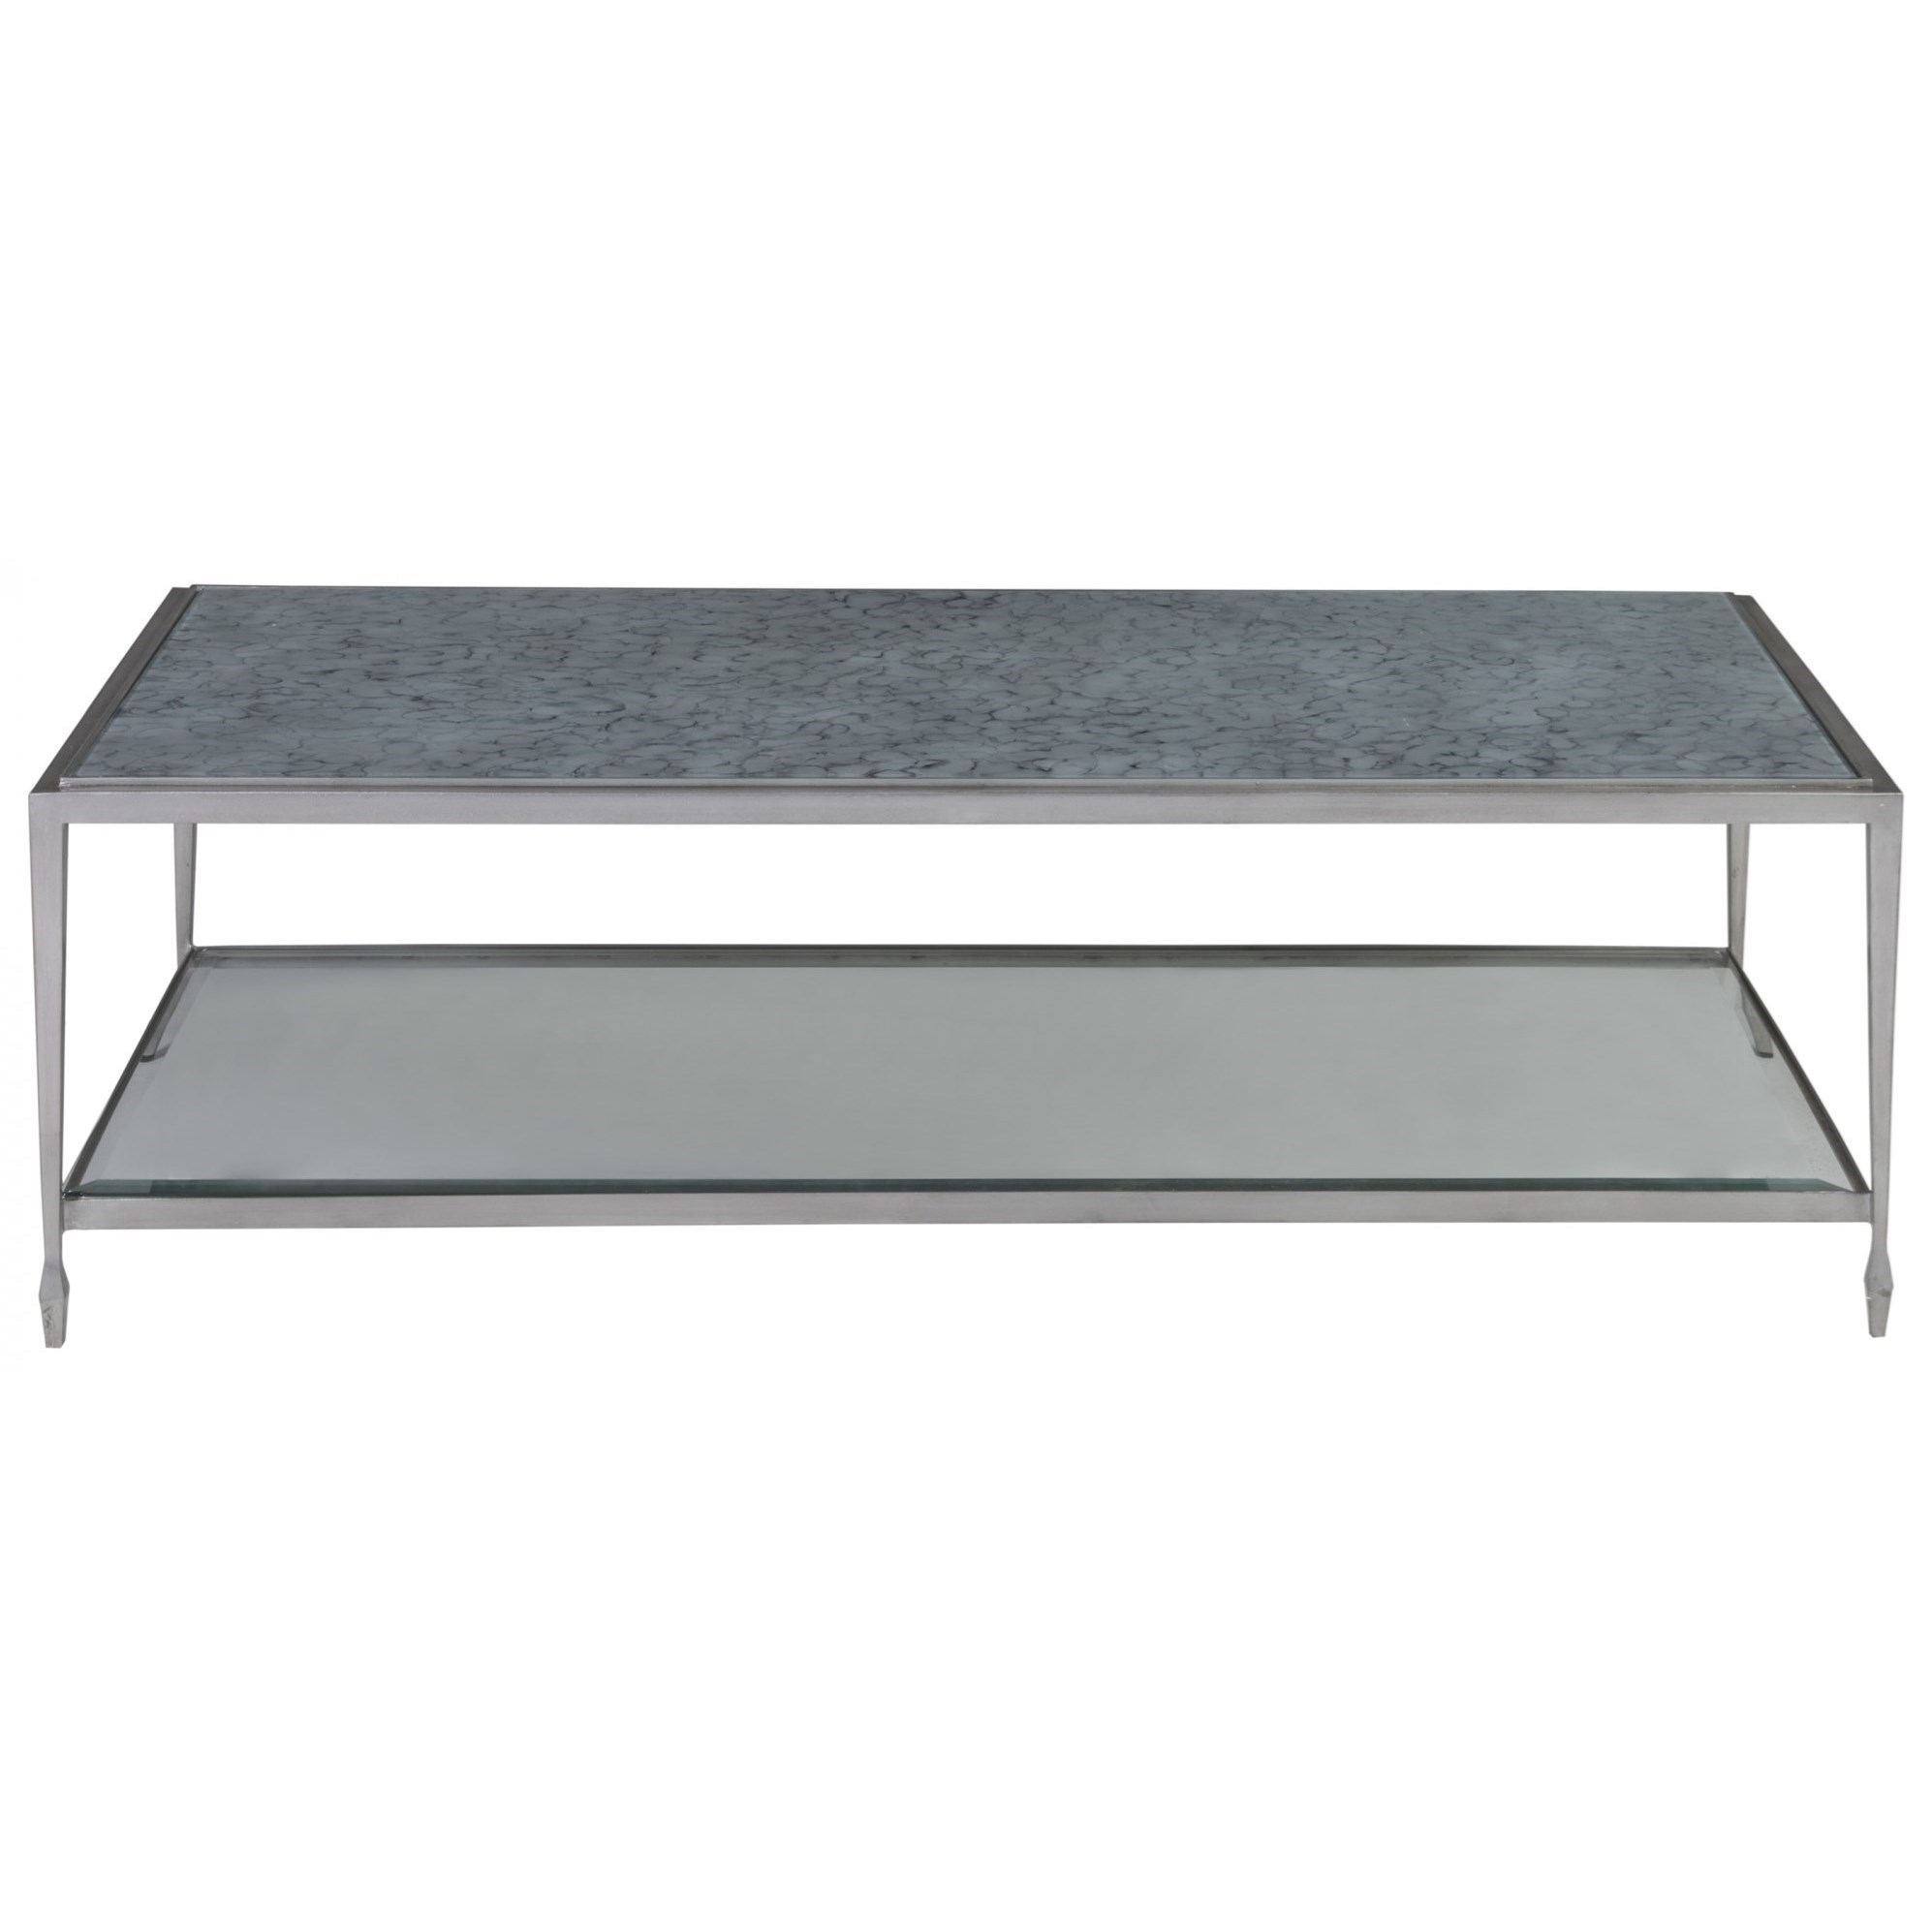 Sashay Rectangular Cocktail Table by Artistica at Baer's Furniture